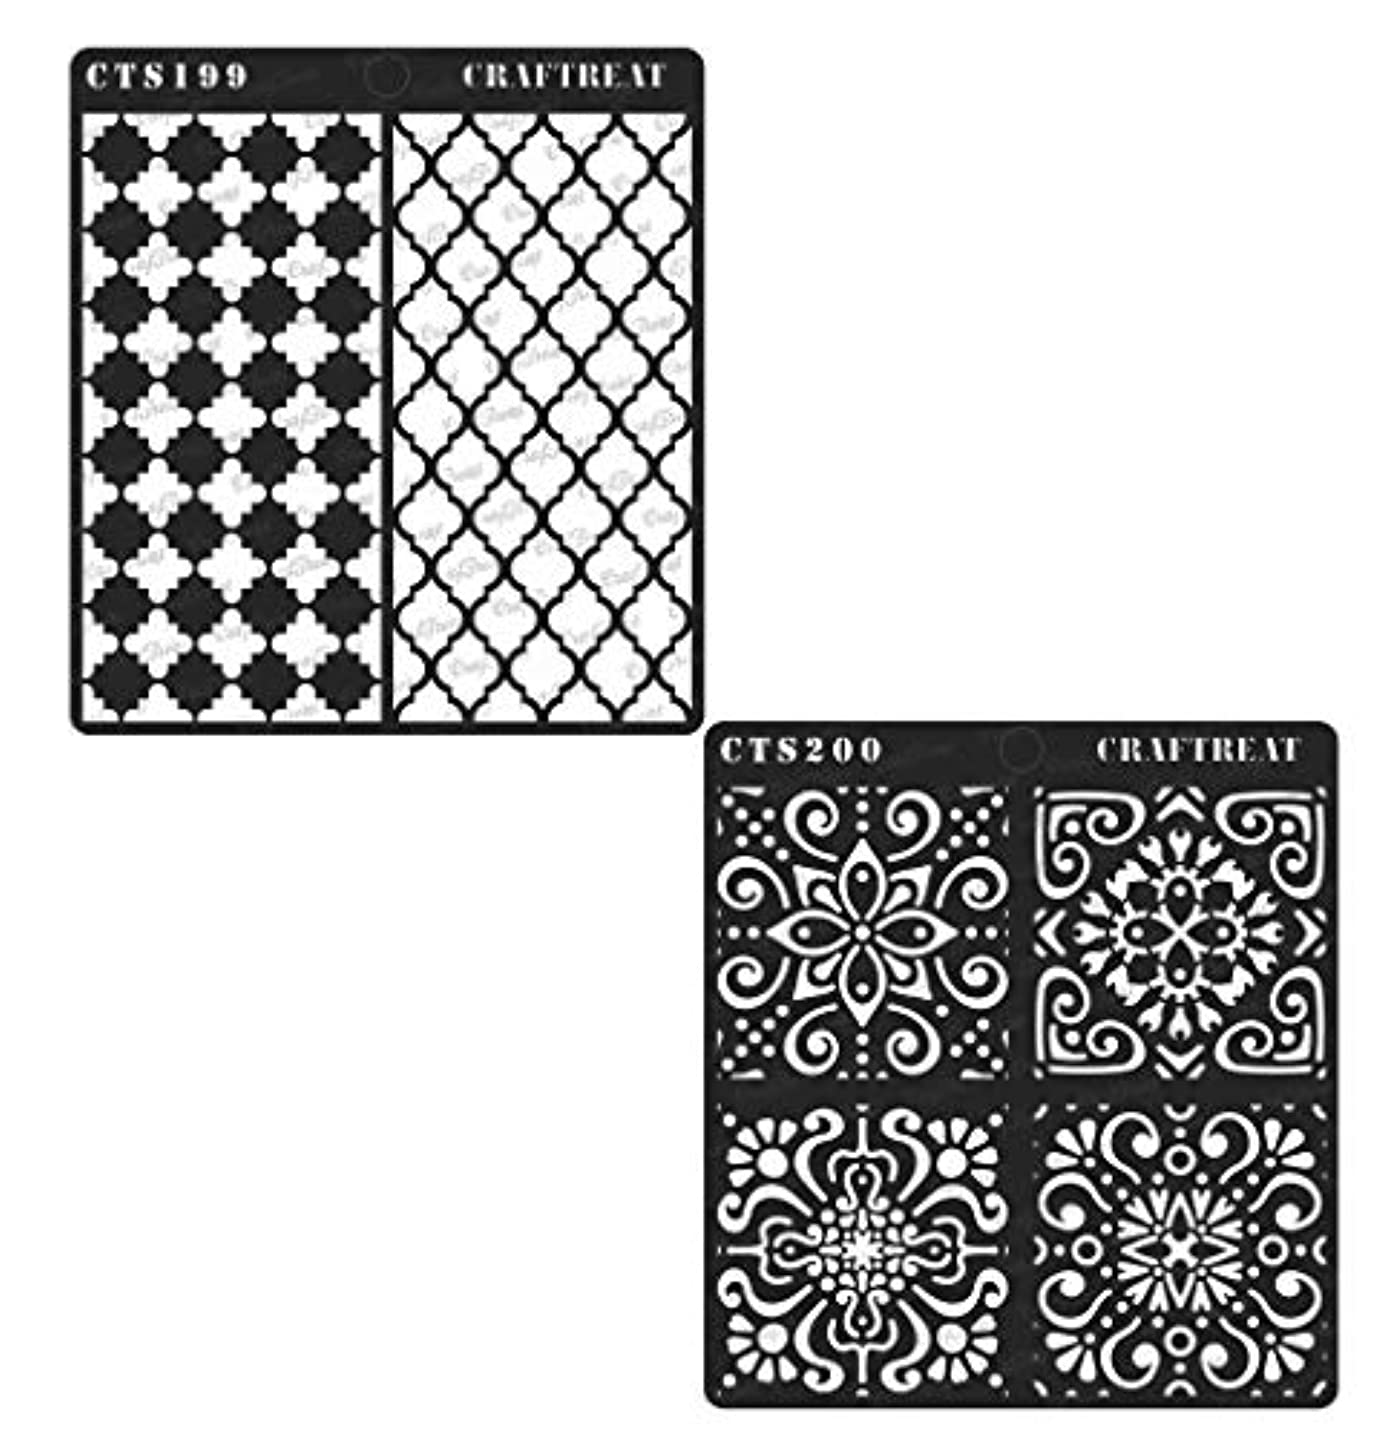 CrafTreat Stencil - Moroccan Trellis & Moroccan Tiles (2 pcs) | Reusable Painting Template for Home Decor, Crafting, DIY Albums, Scrapbook and Printing on Paper, Floor, Wall, Tile, Fabric, Wood 6